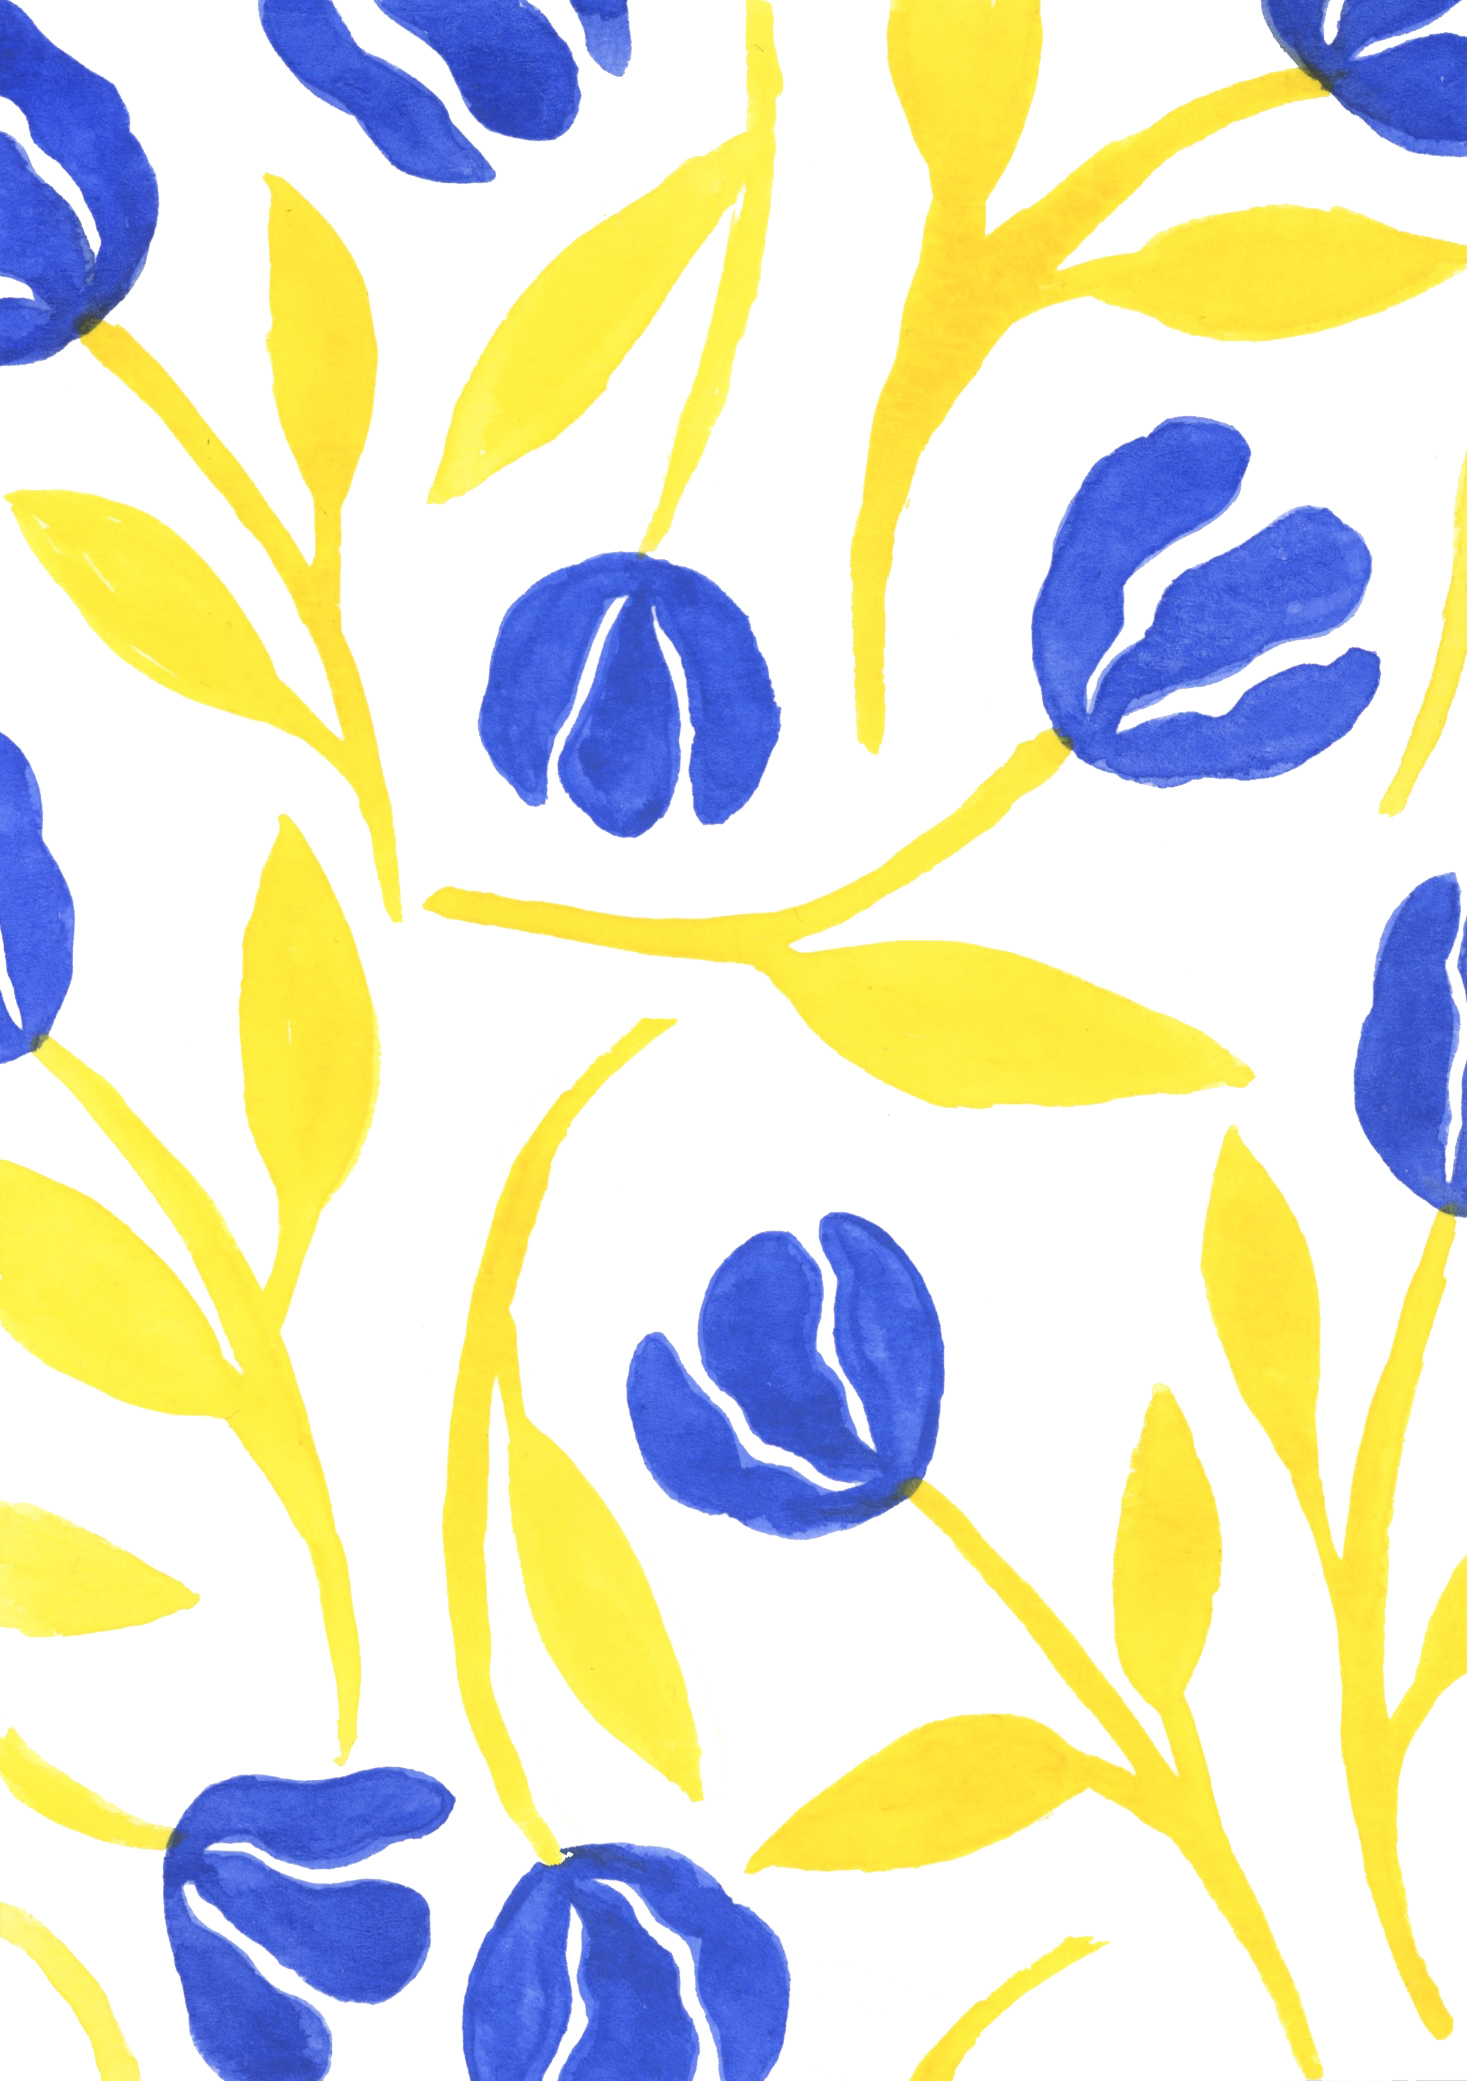 Blue and Yellow Fleurs Pattern.jpg